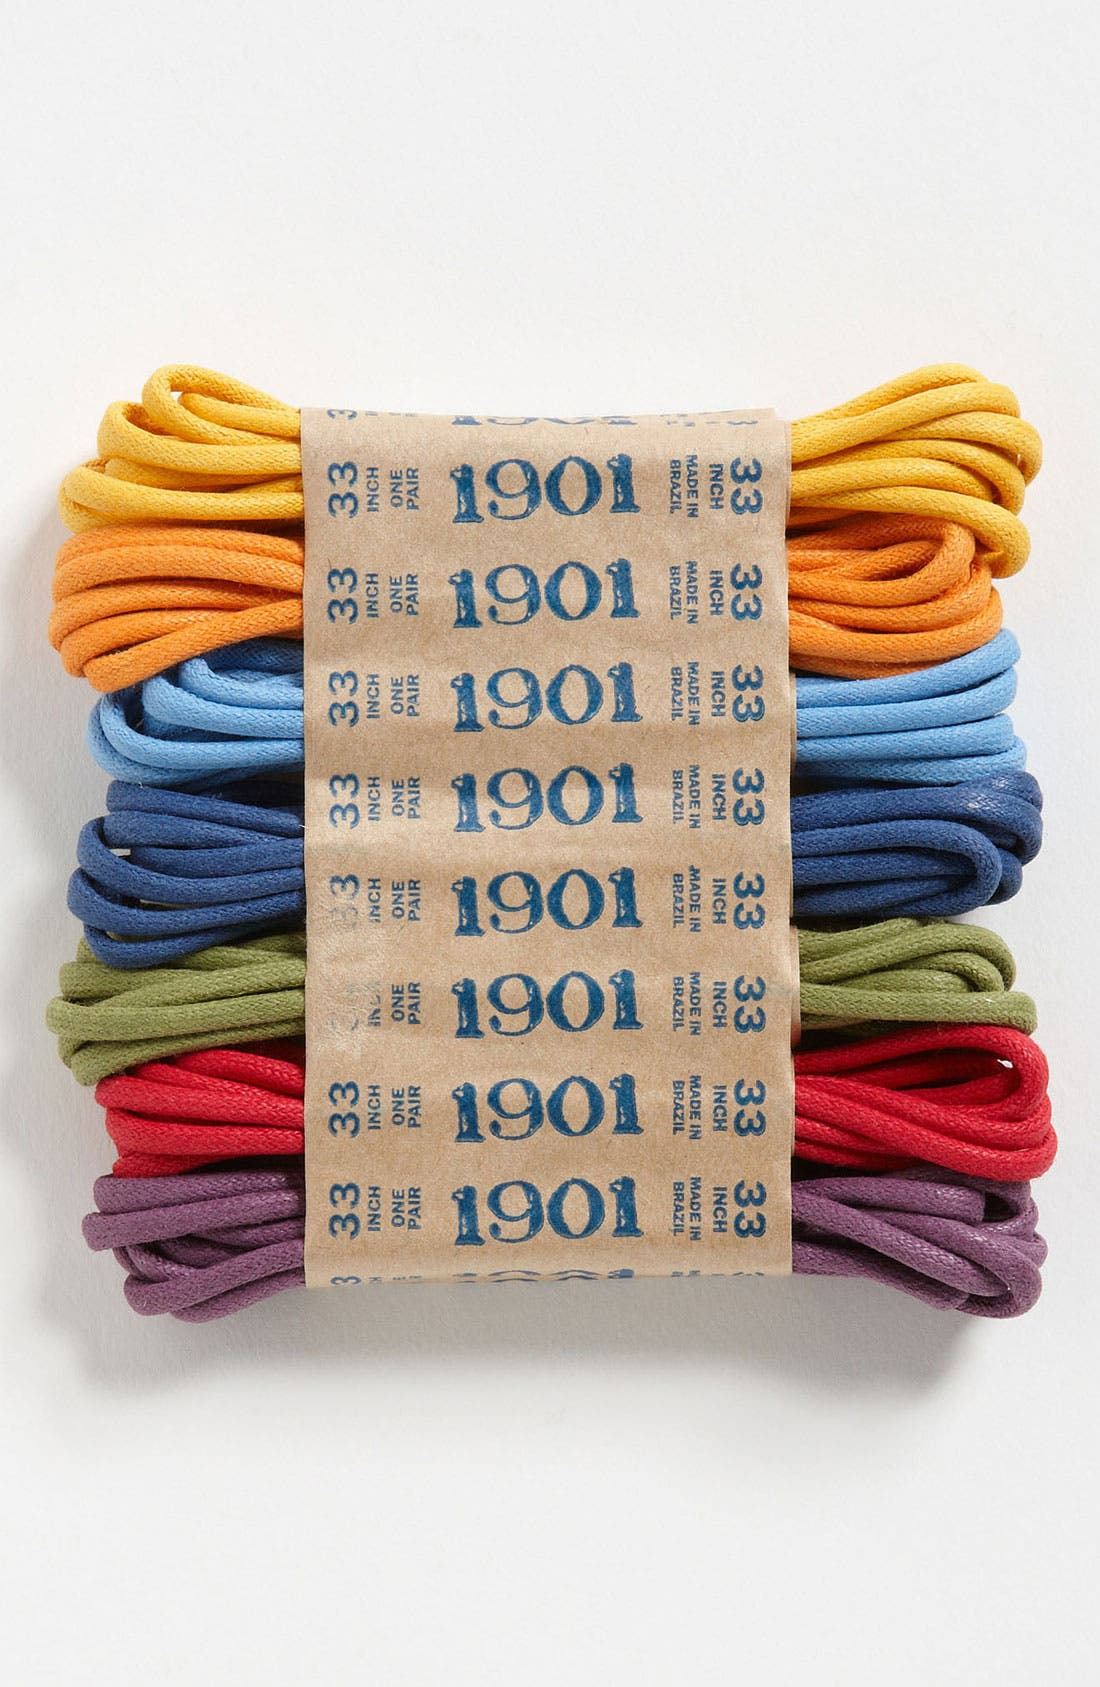 Alternate Image 1 Selected - 1901 Shoelaces (7-Pack)